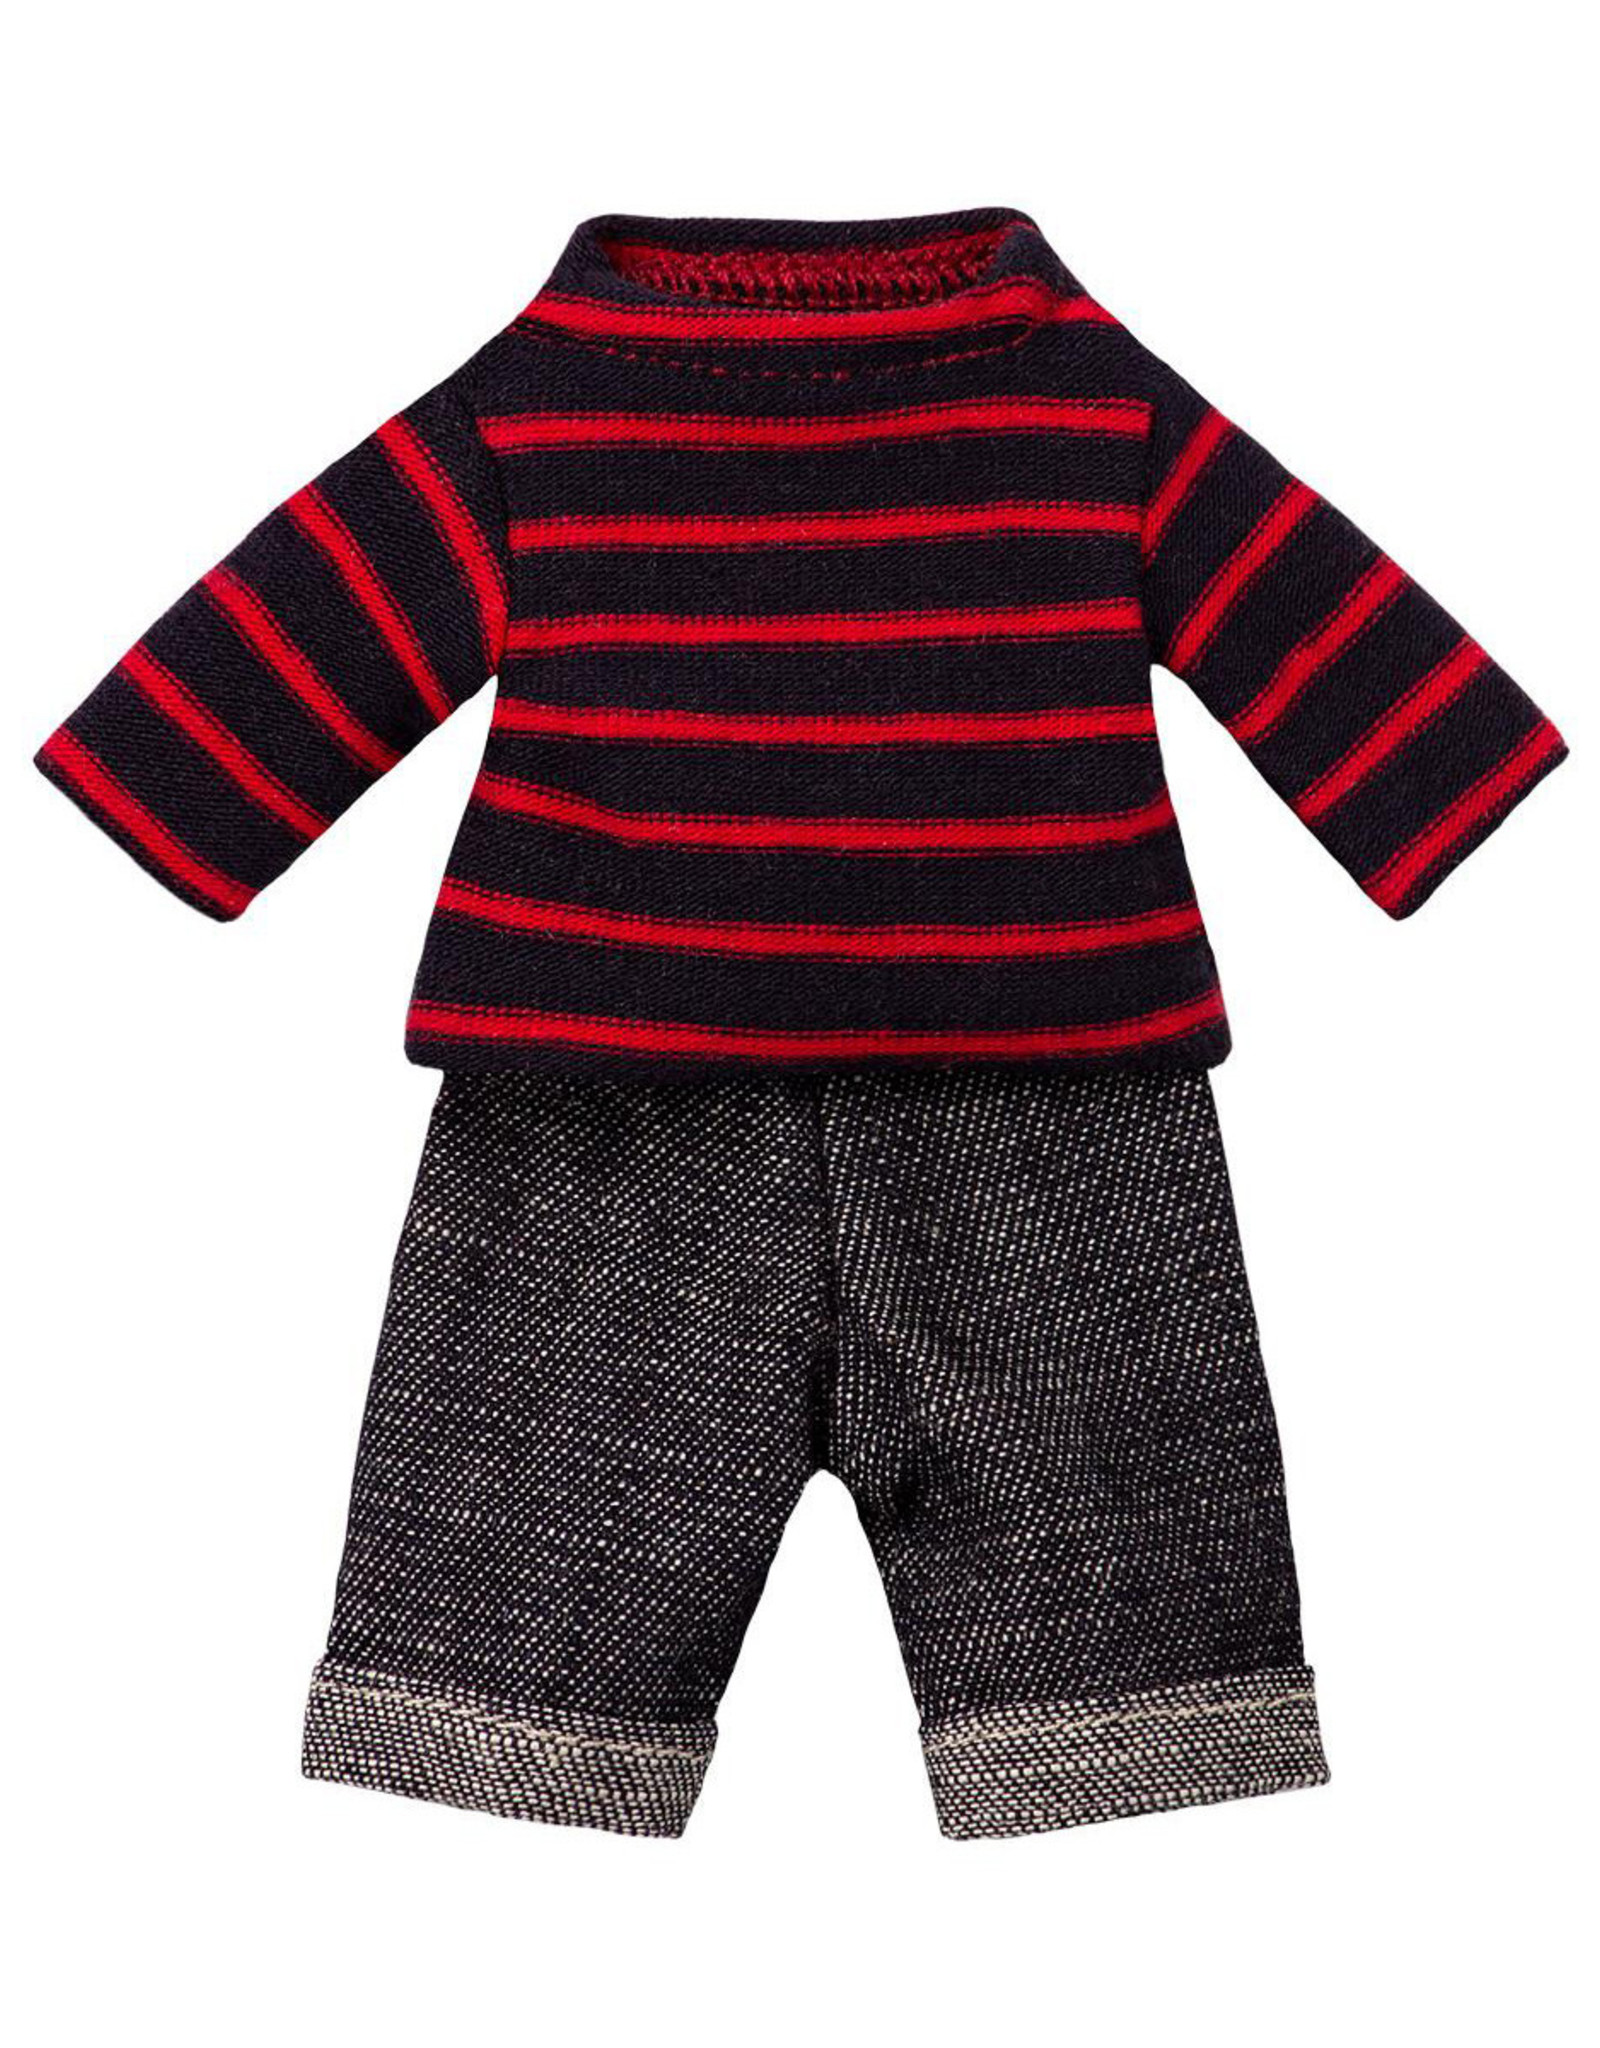 Maileg Dad Outfit - Red Striped Top and Jeans